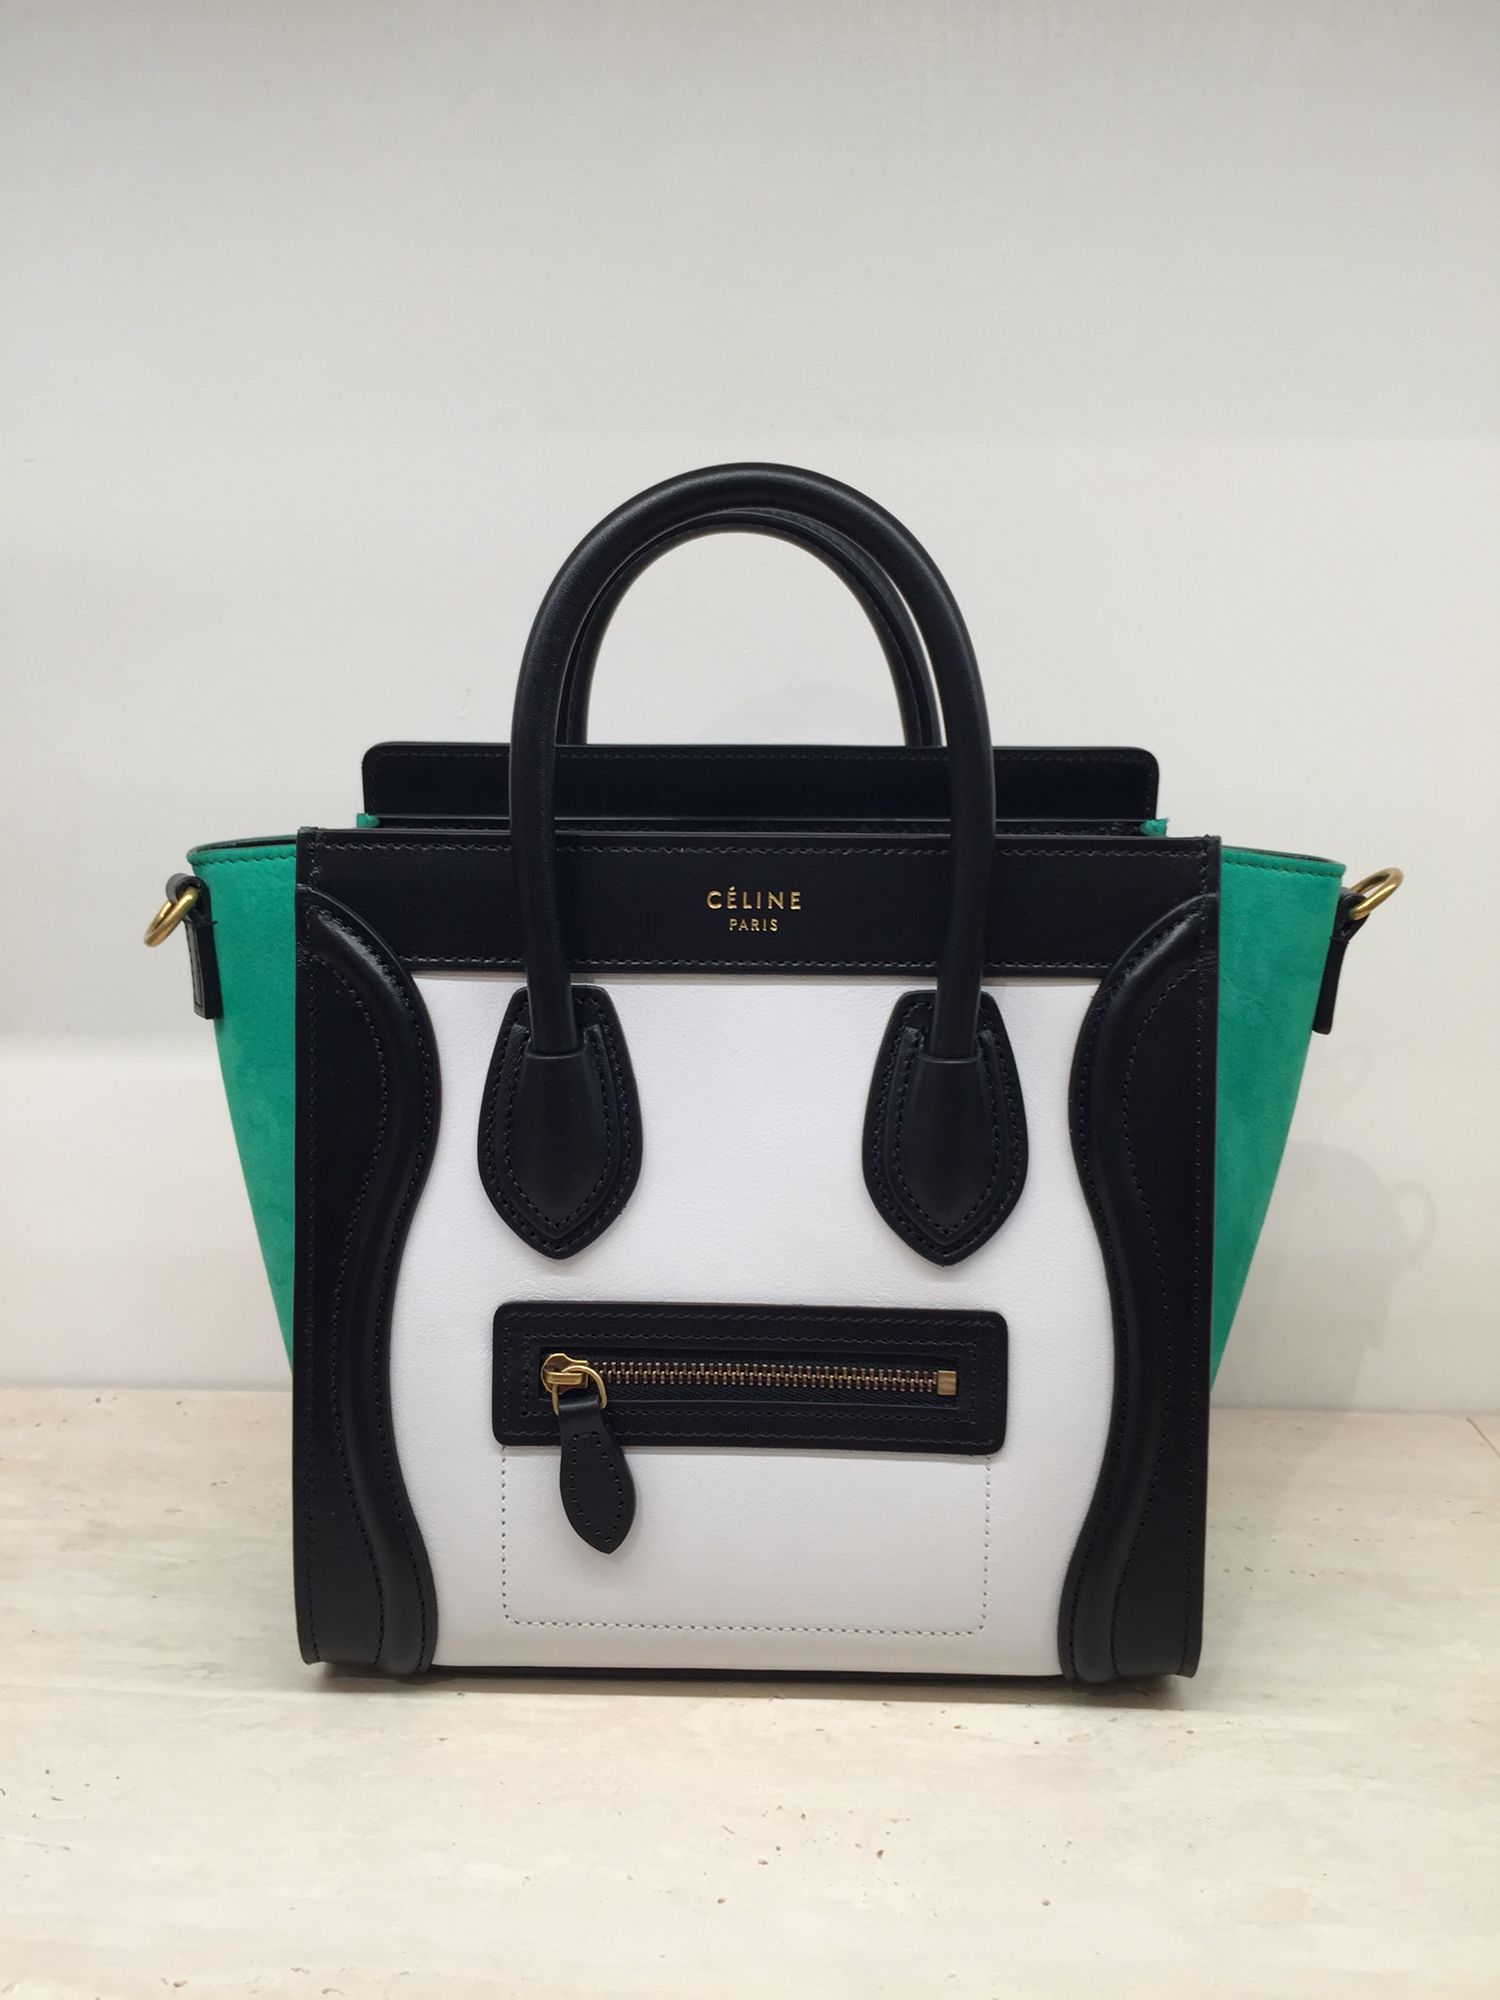 c37ca15876df Celine nano luggage tote handbag tri-color green white black